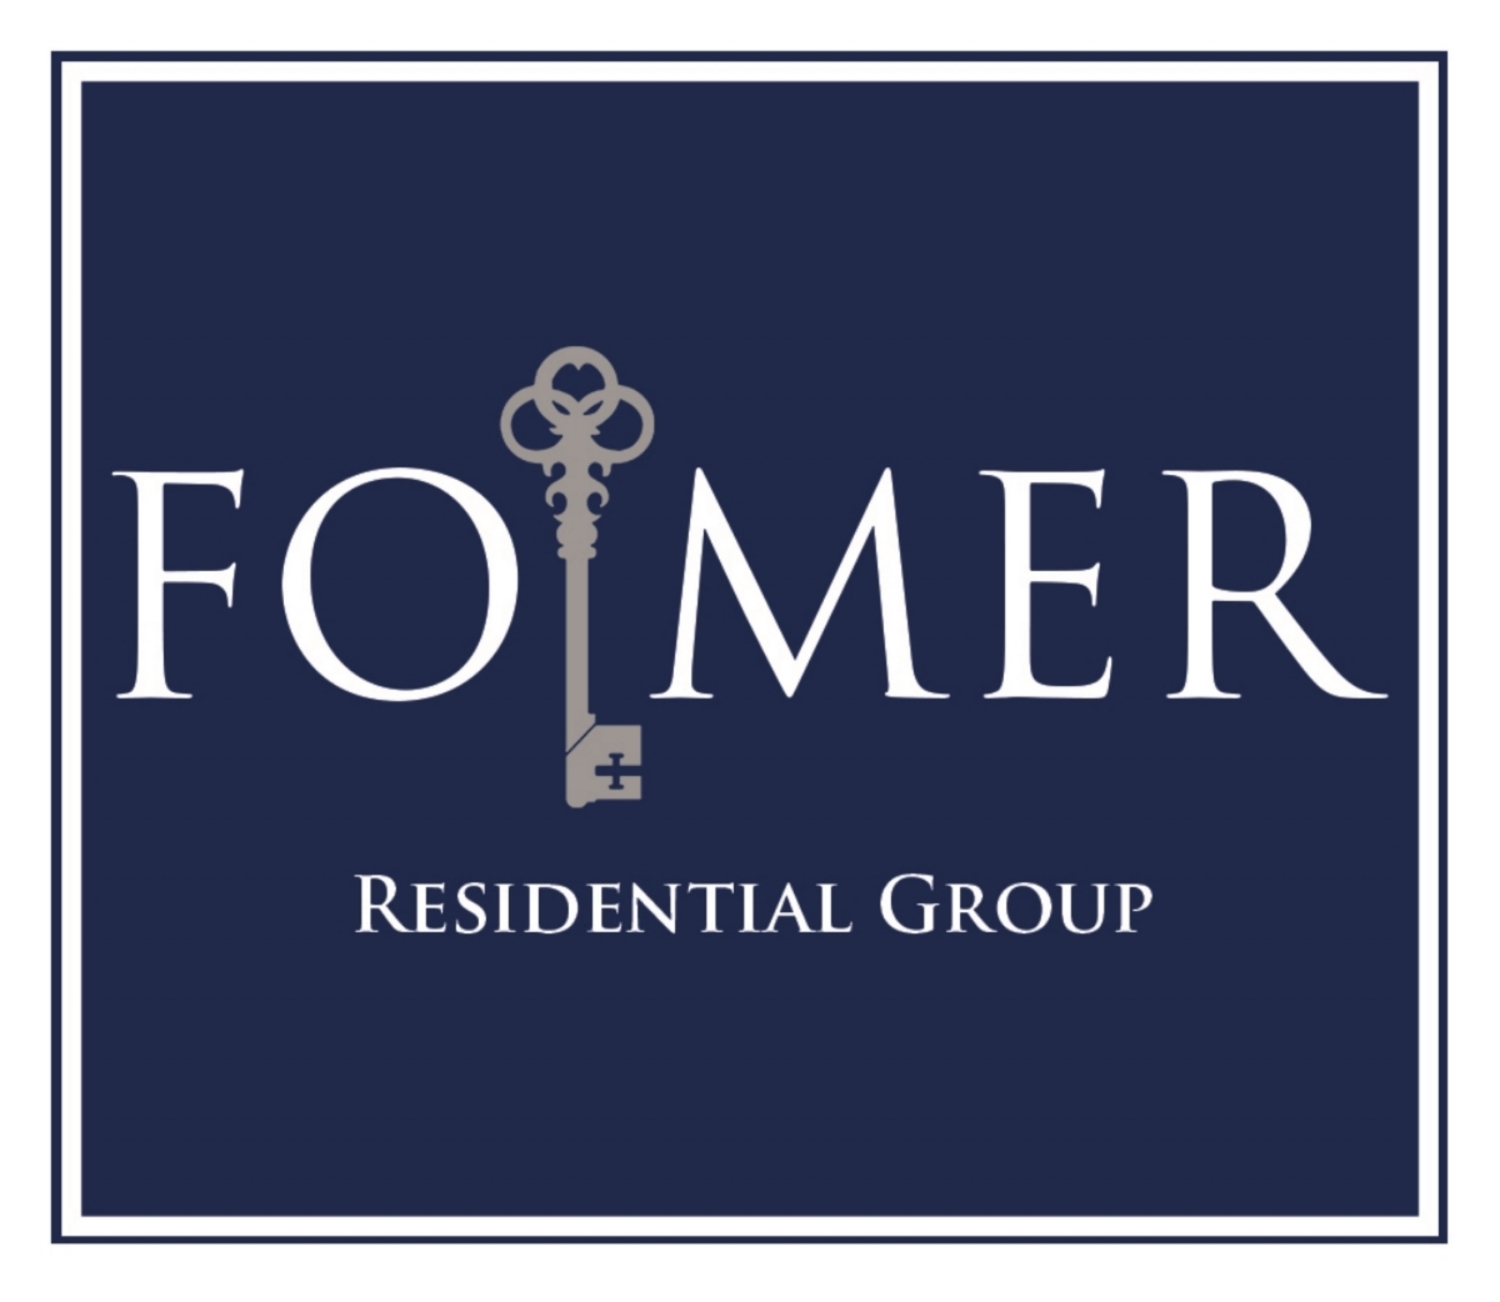 FOLMER RESIDENTIAL GROUP